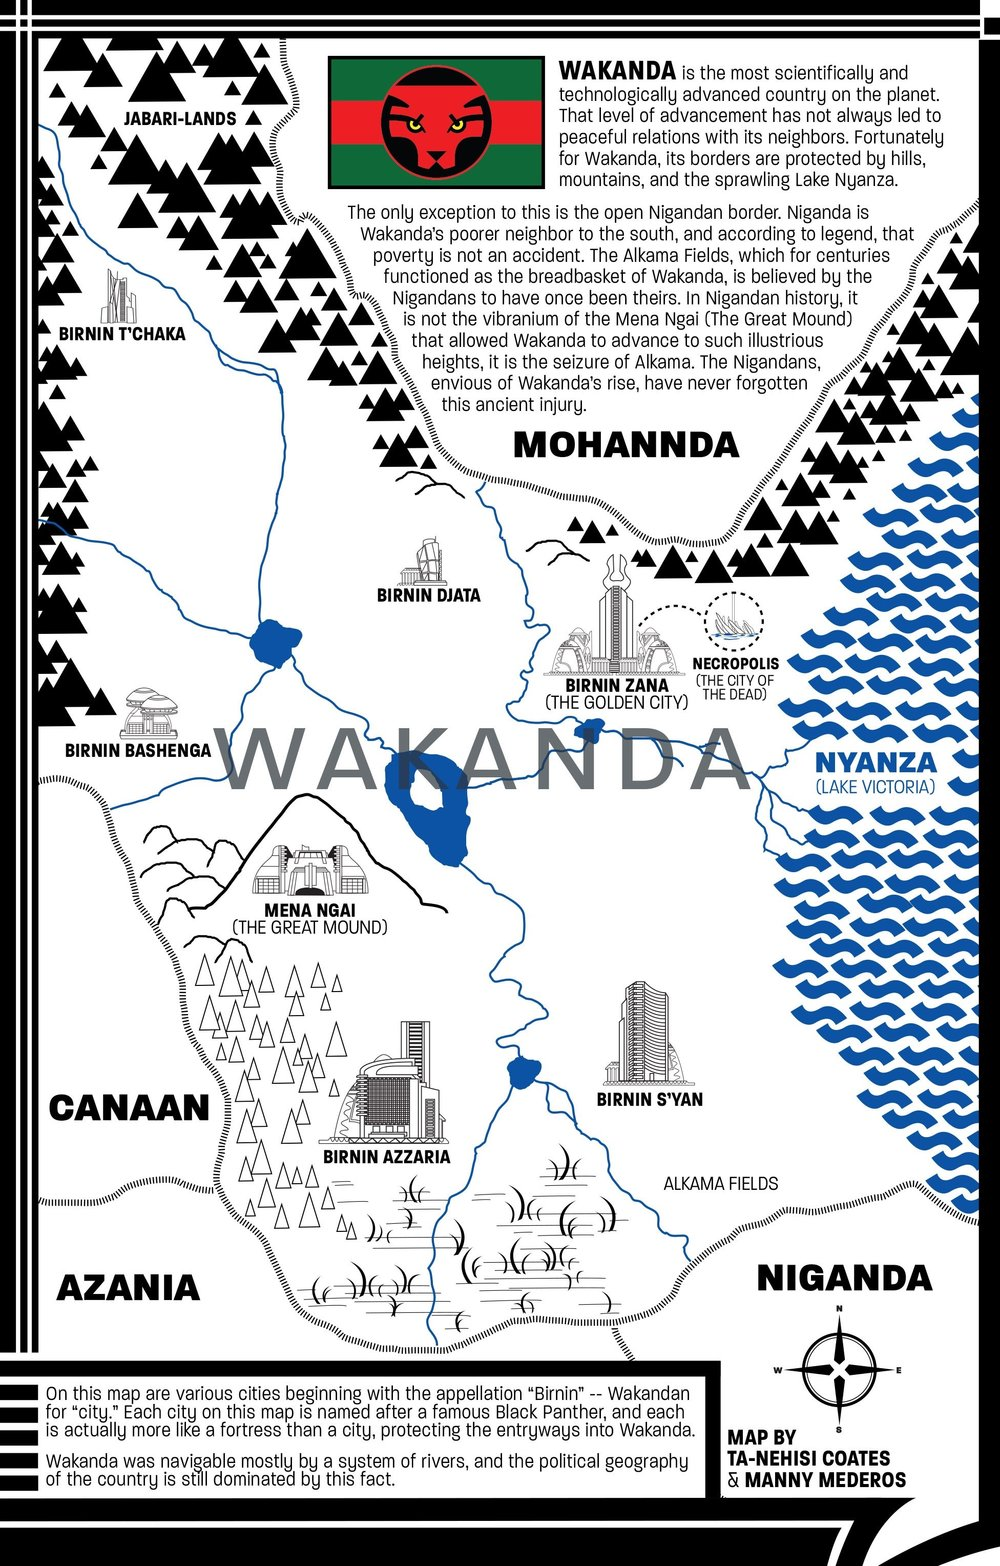 Map of Wakanda